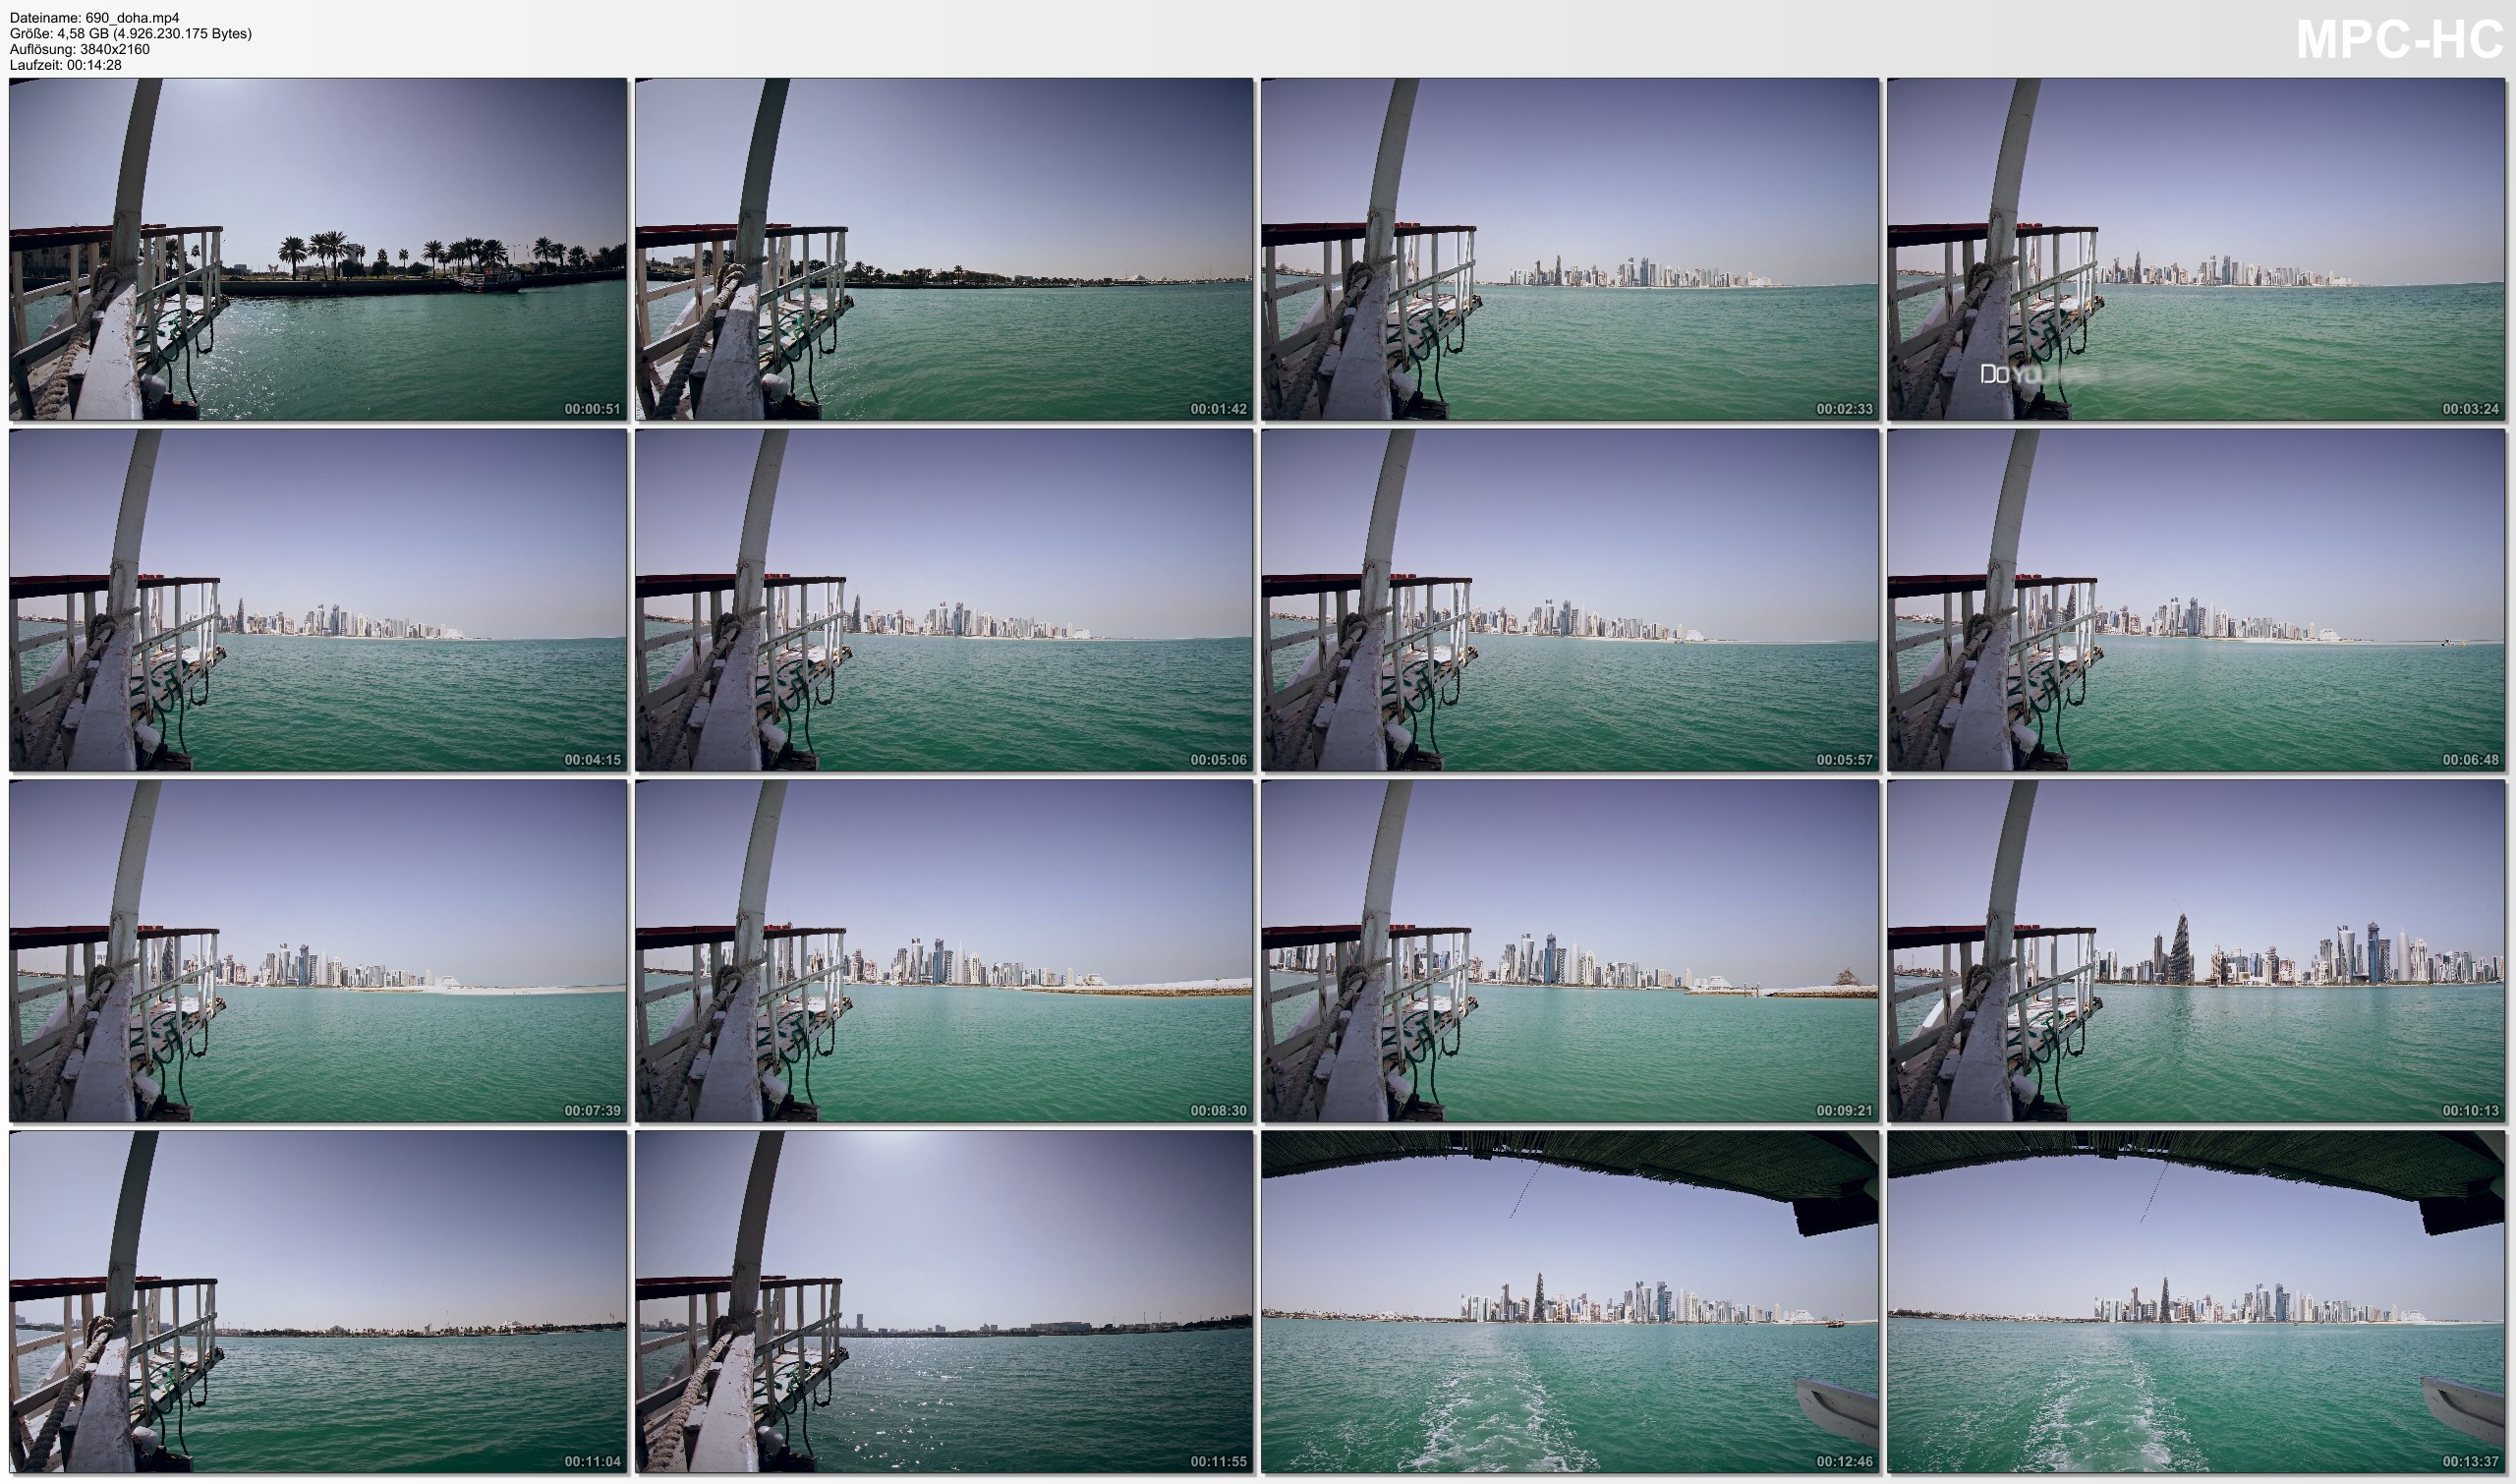 Pictures from Video 【4K】Sunshine Boat Round Trip facing the Skyline of Doha (Qatar) 2020 | UltraHD Travel Video